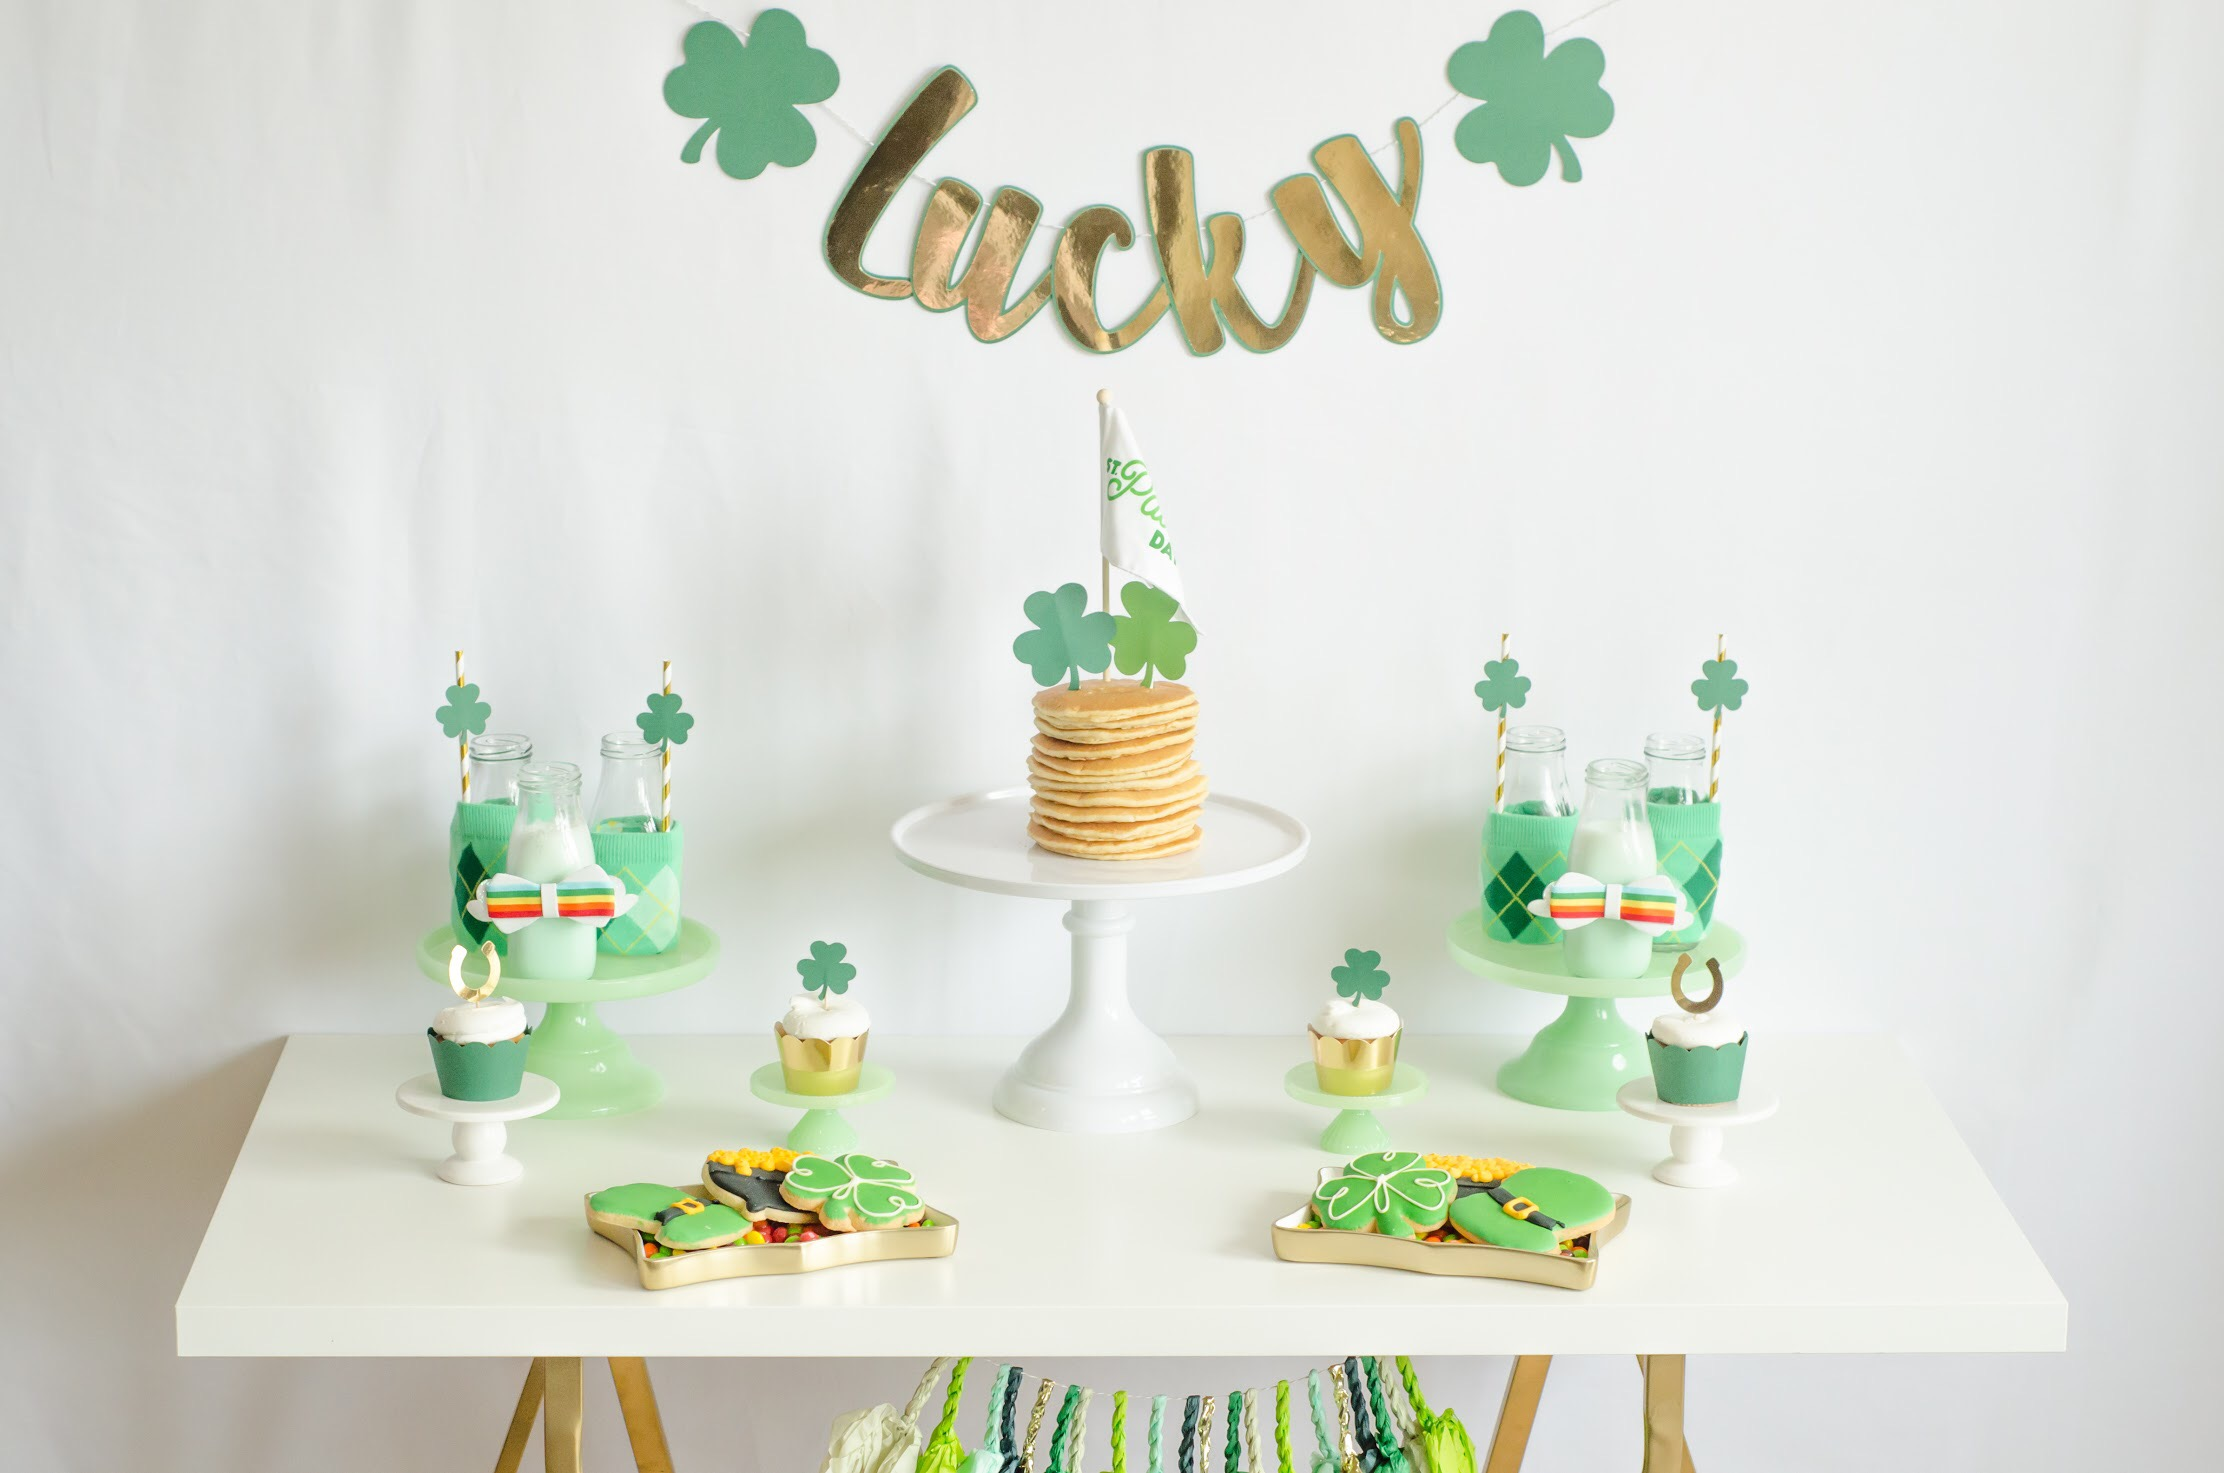 See all the green party details and how to create this Breakfast Bar spread for Saint Patricks Day on Mint Event Design www.minteventdesign.com #partyideas #partydecorations #breakfastfood #saintpatricksday #stpatricksday #pancakes